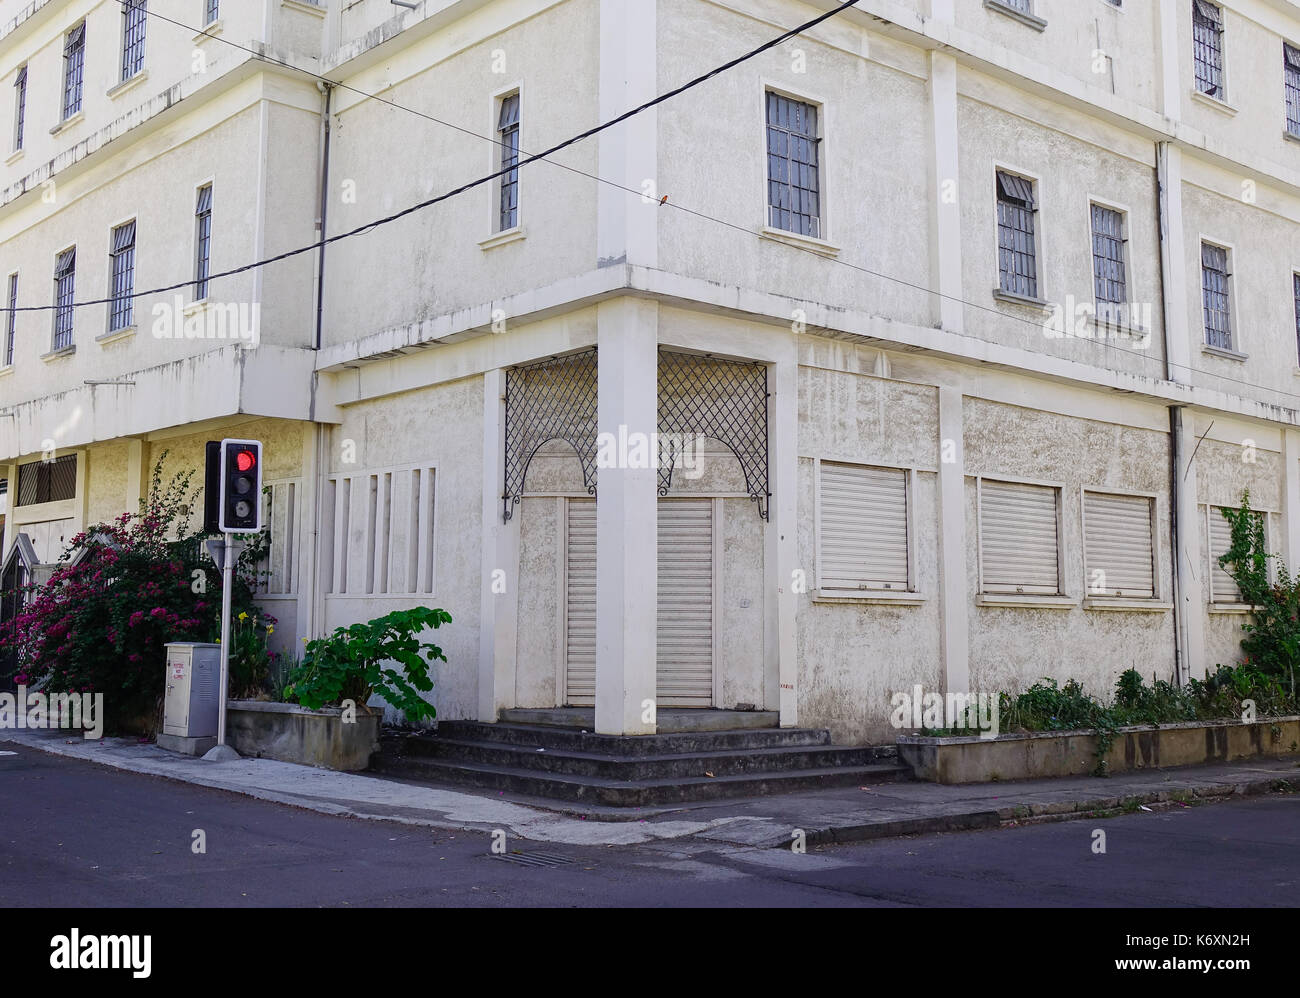 Dwelling house mauritius stock photos dwelling house - Where is port louis mauritius located ...